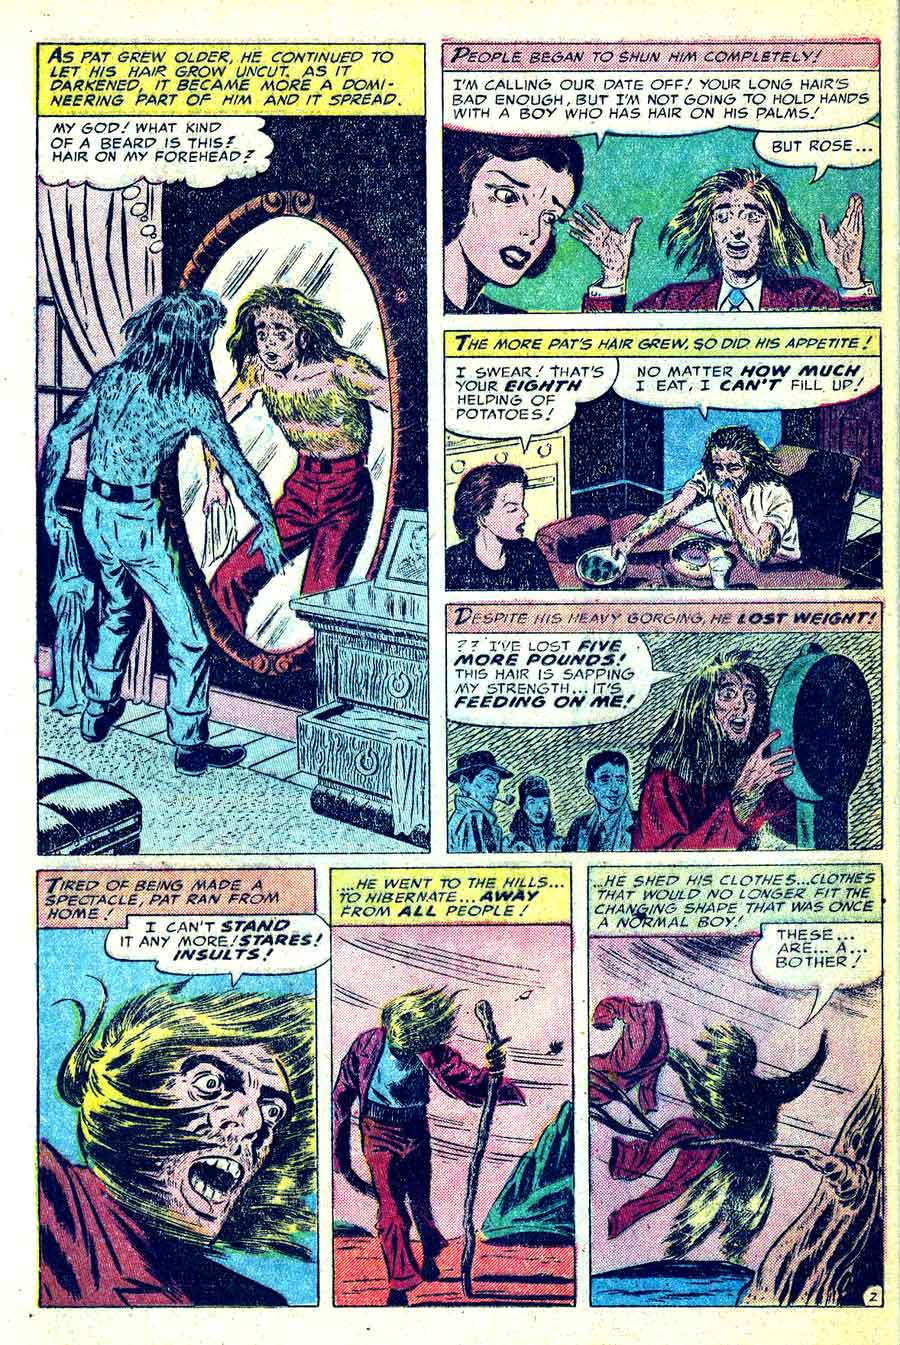 Strange Fantasy v1 #9 golden age horror comic book page art by Steve Ditko